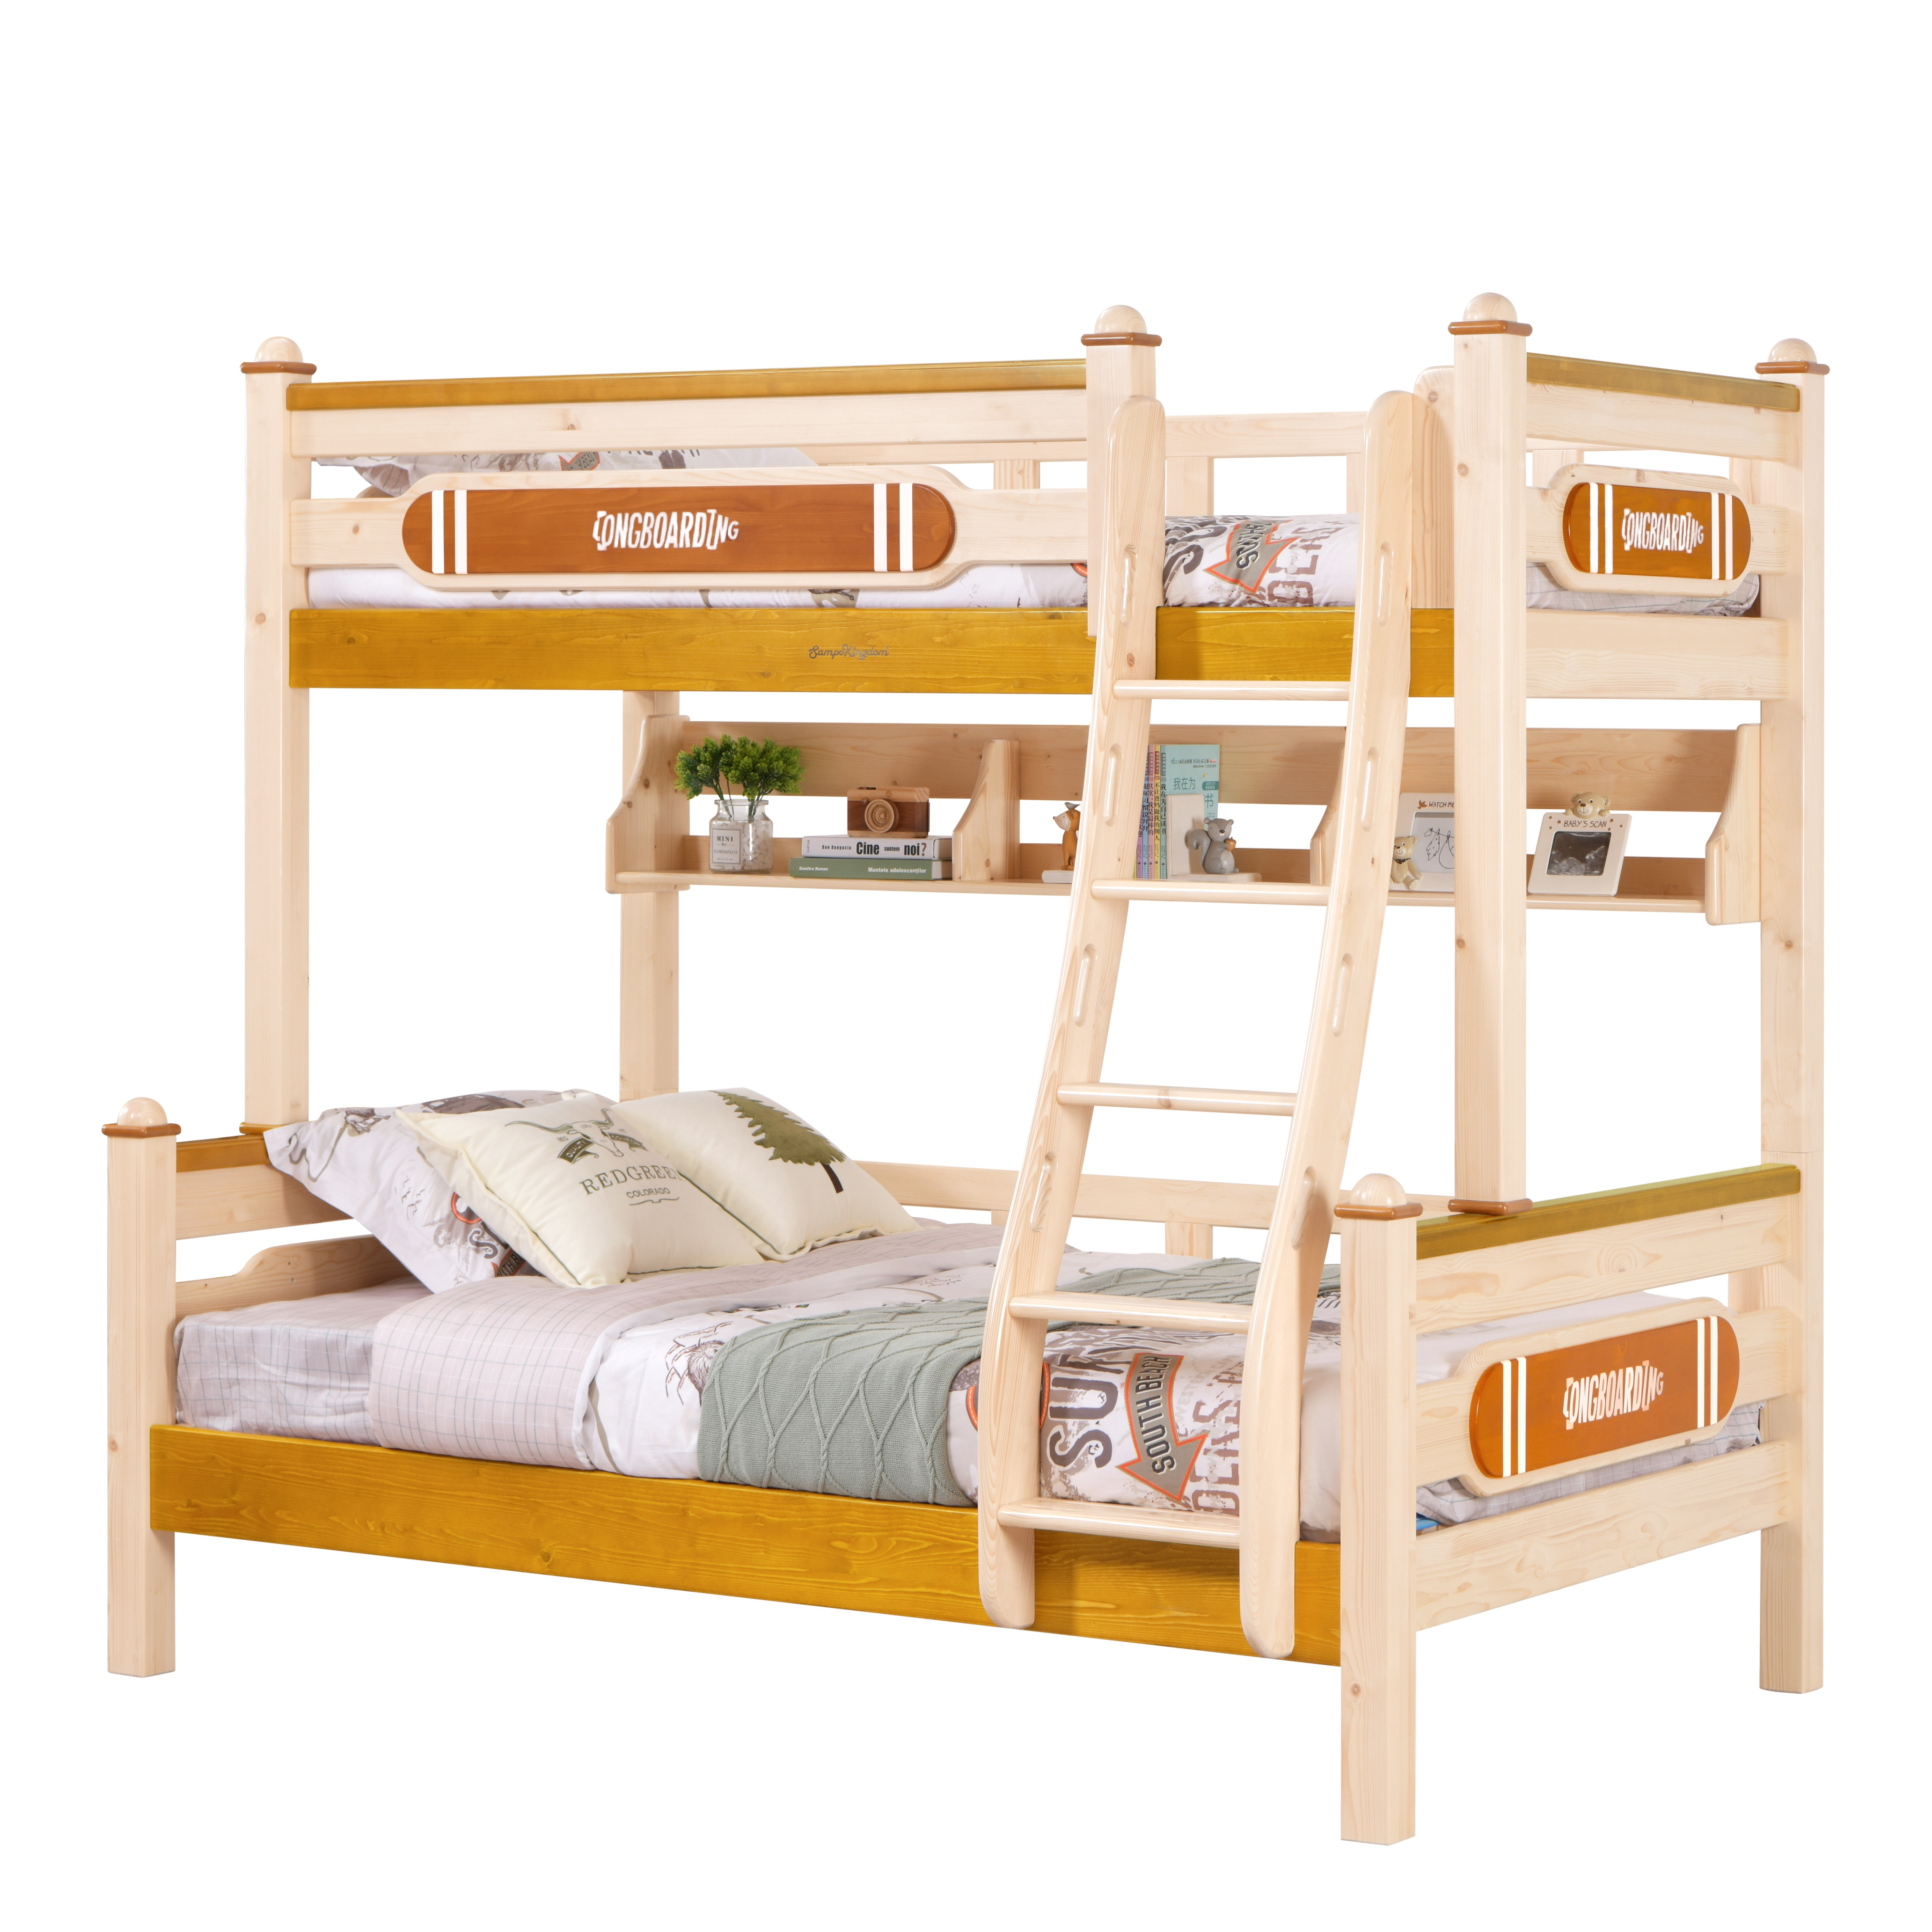 Picture of: Cheap Wood Children Bunk Bed Kids Indonesia With Factory Price Buy Wood Children Bunk Bed Wood Bunk Bed Kids Wood Bunk Bed Indonesia Product On Alibaba Com